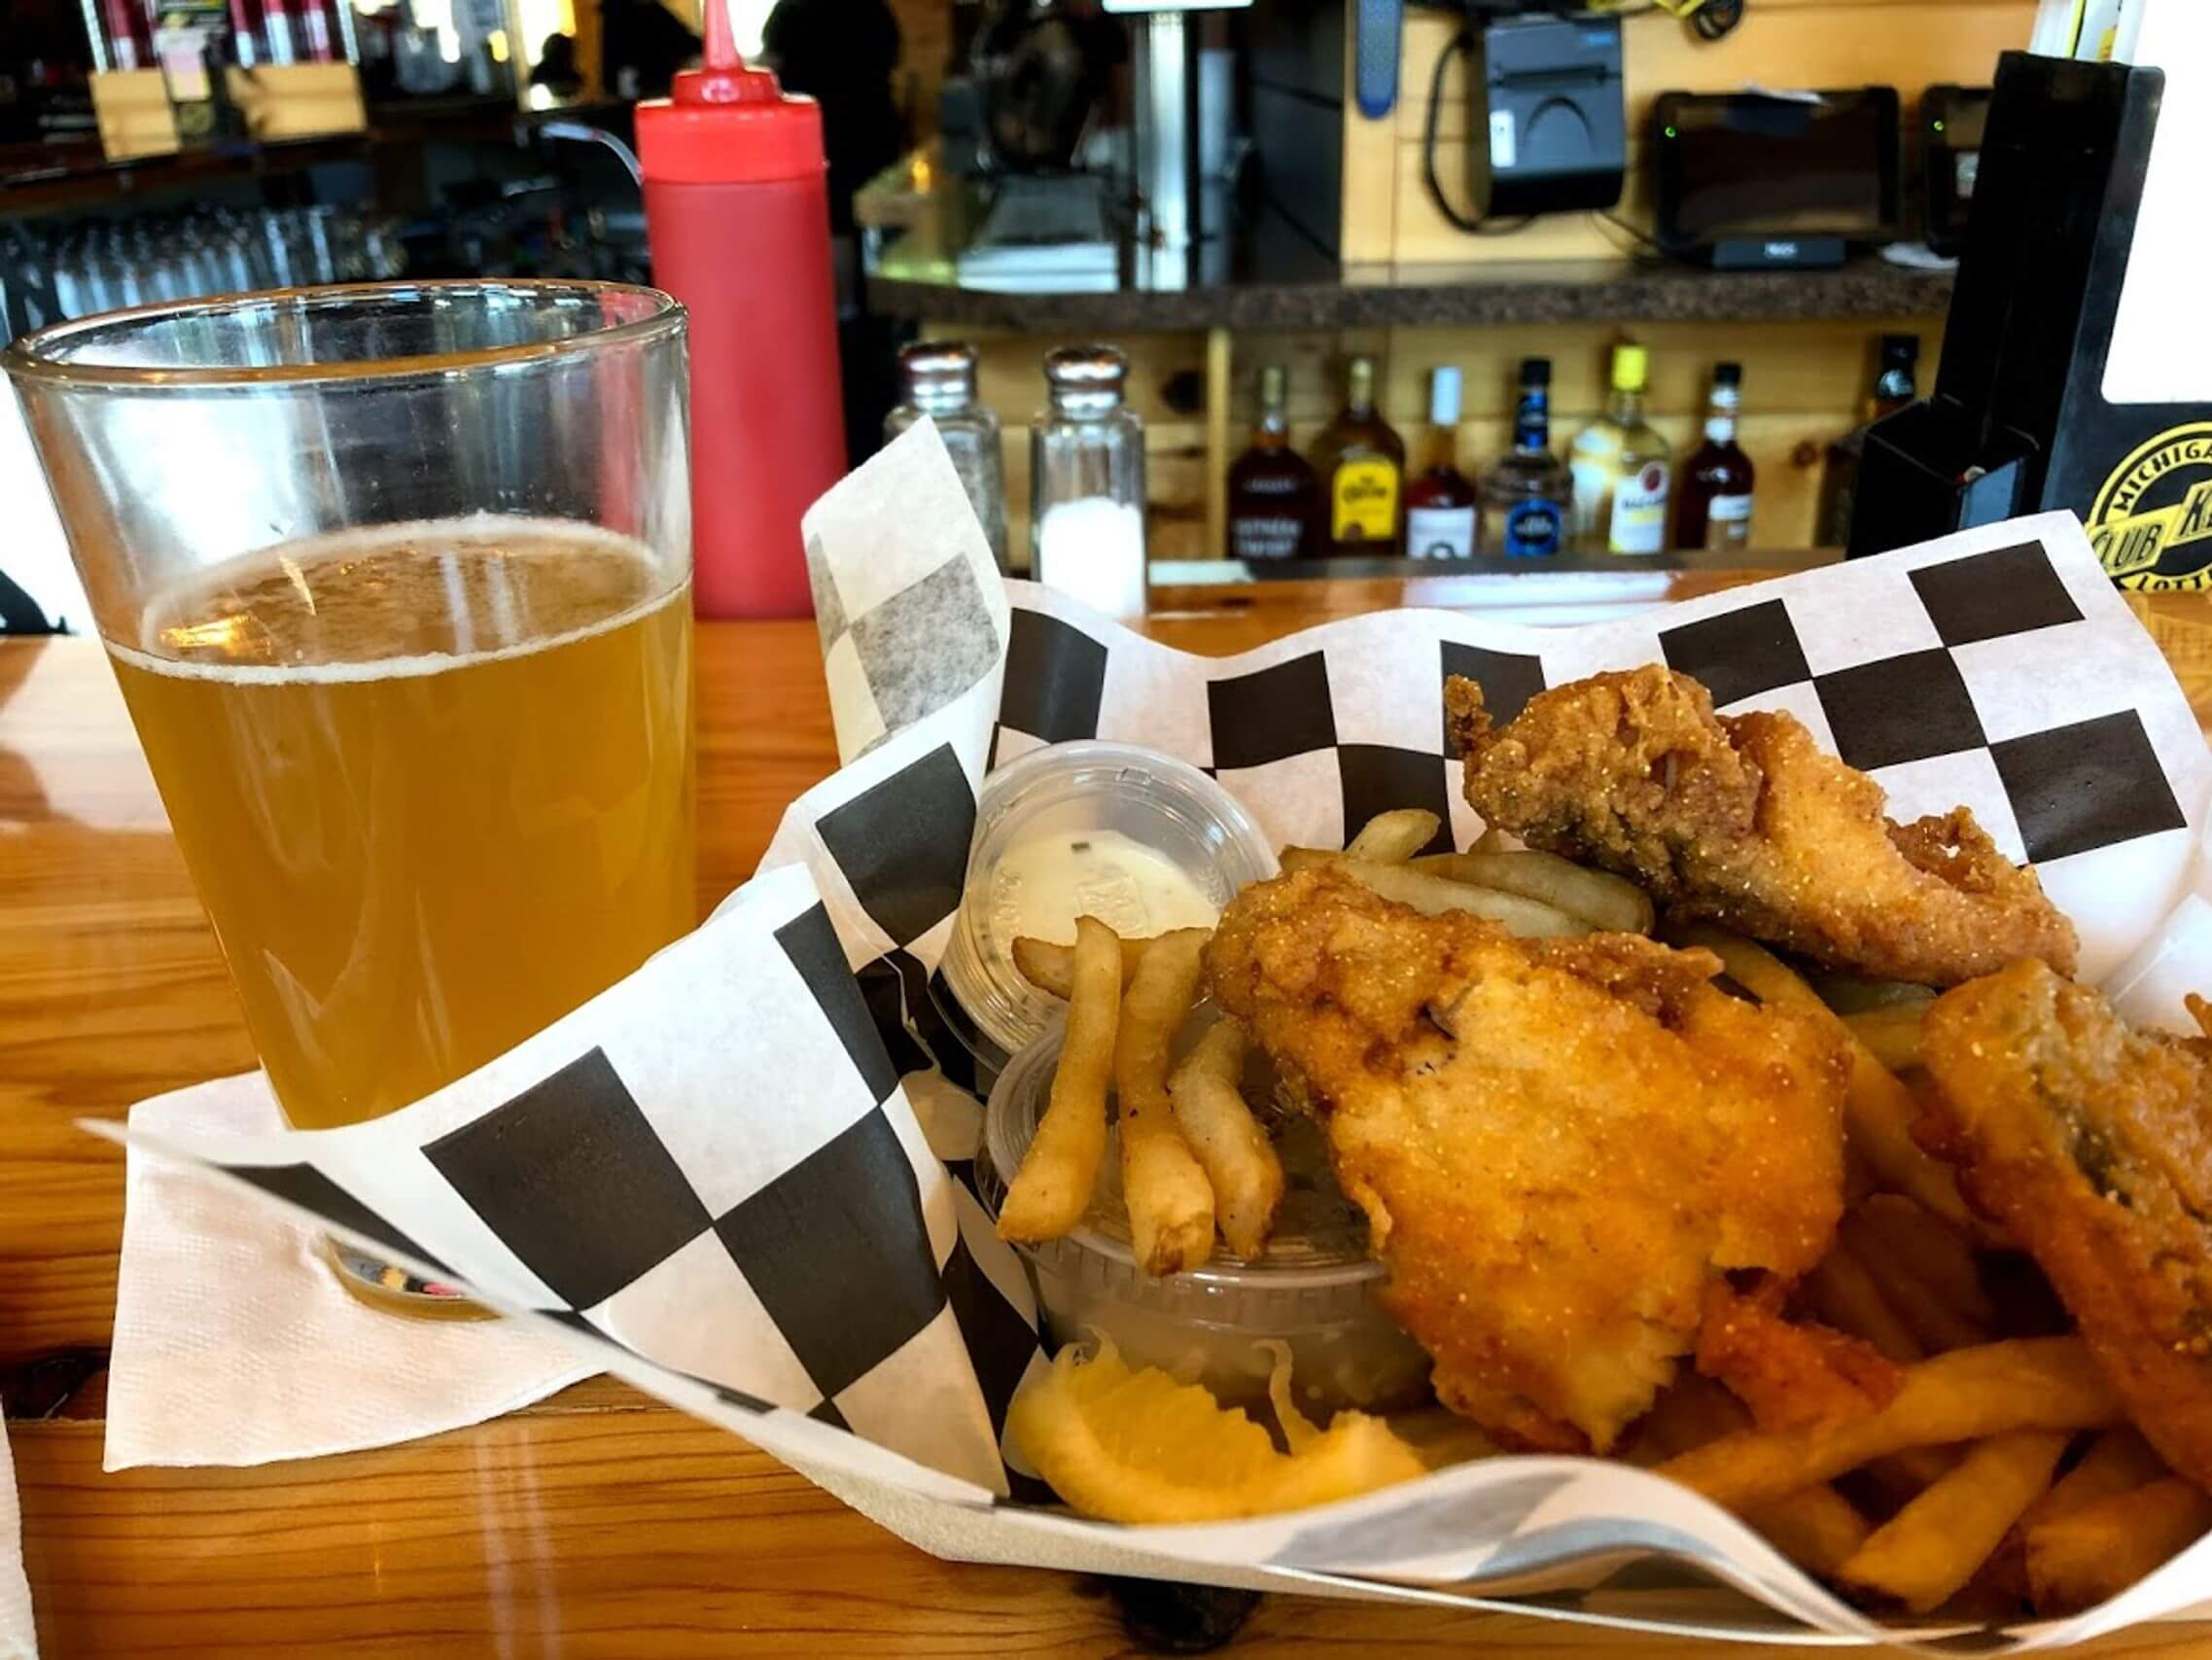 Where To Eat Whitefish In The Upper Peninsula Little Blue Backpack A subreddit dedicated to the latest news and happenings in the great state of michigan. eat whitefish in the upper peninsula